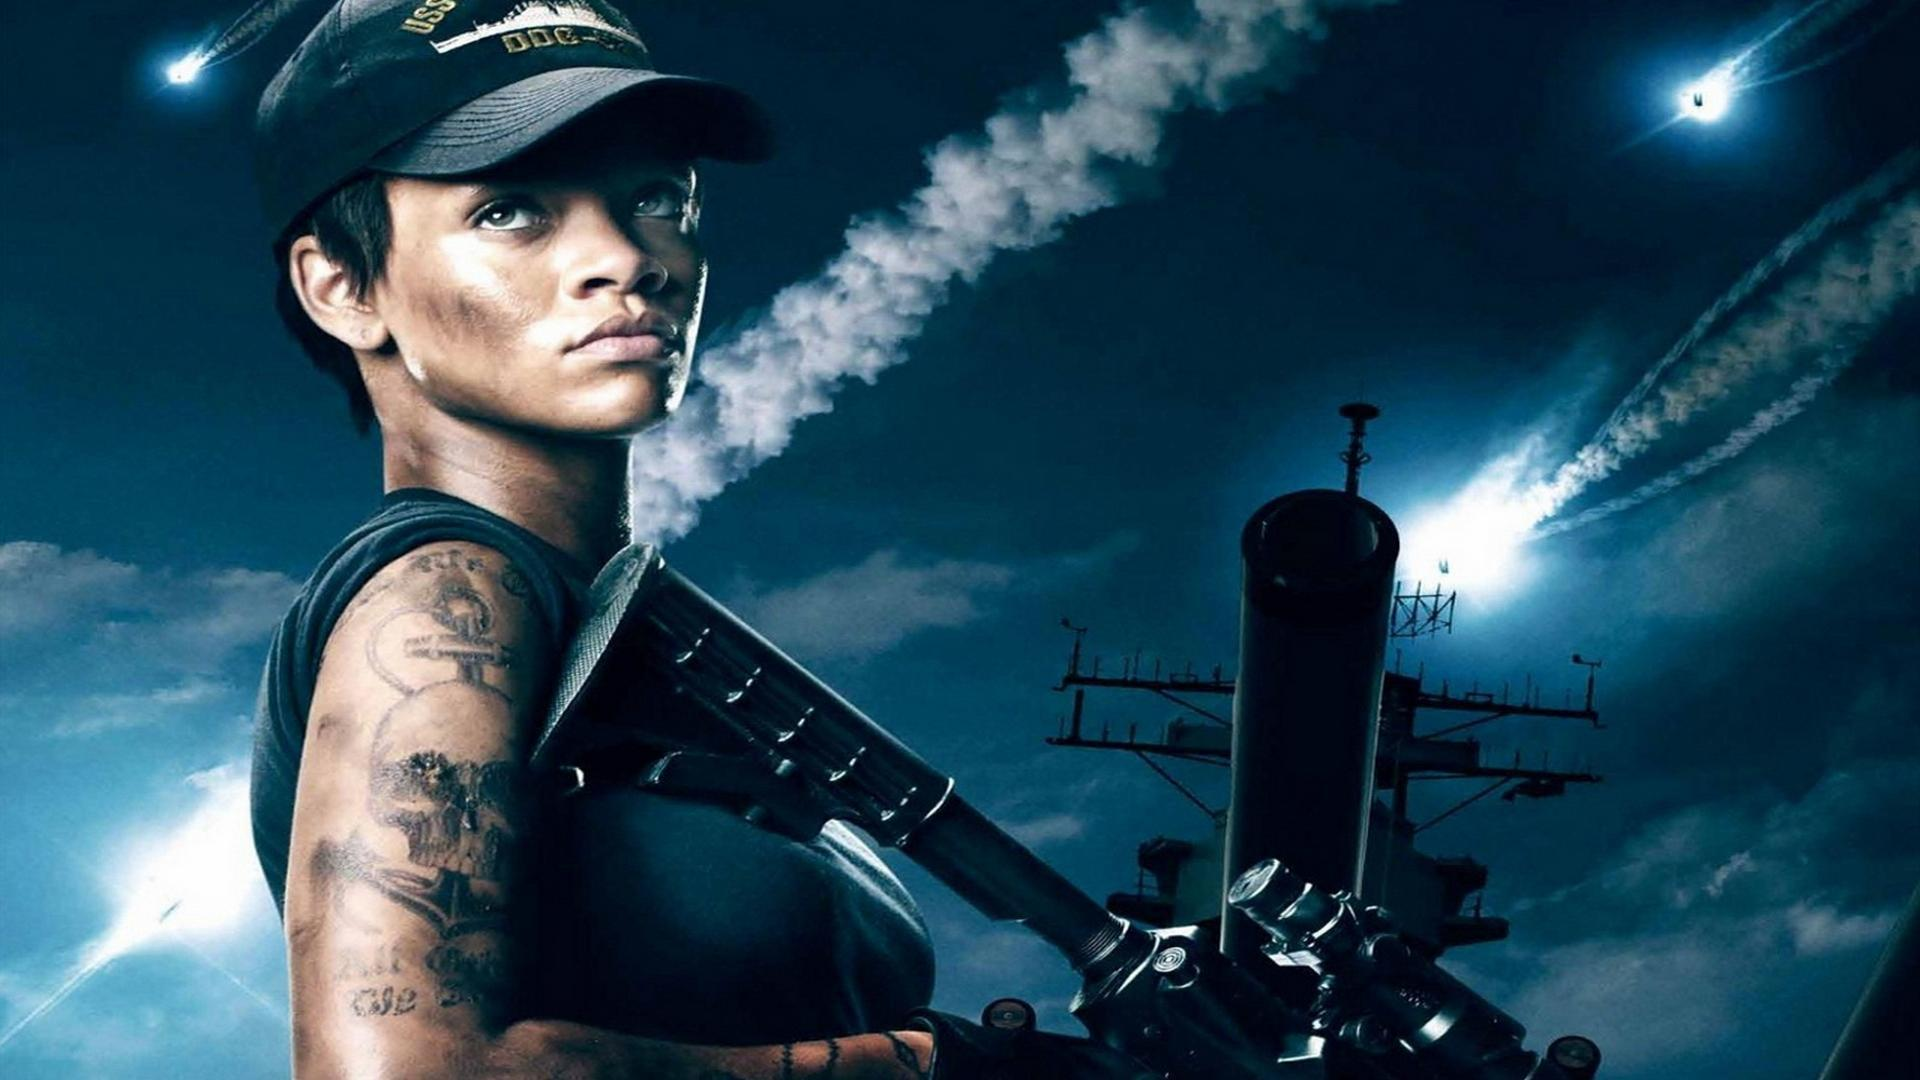 Battleship 2012 Rihanna HD Wallpapers 1080p High Definition